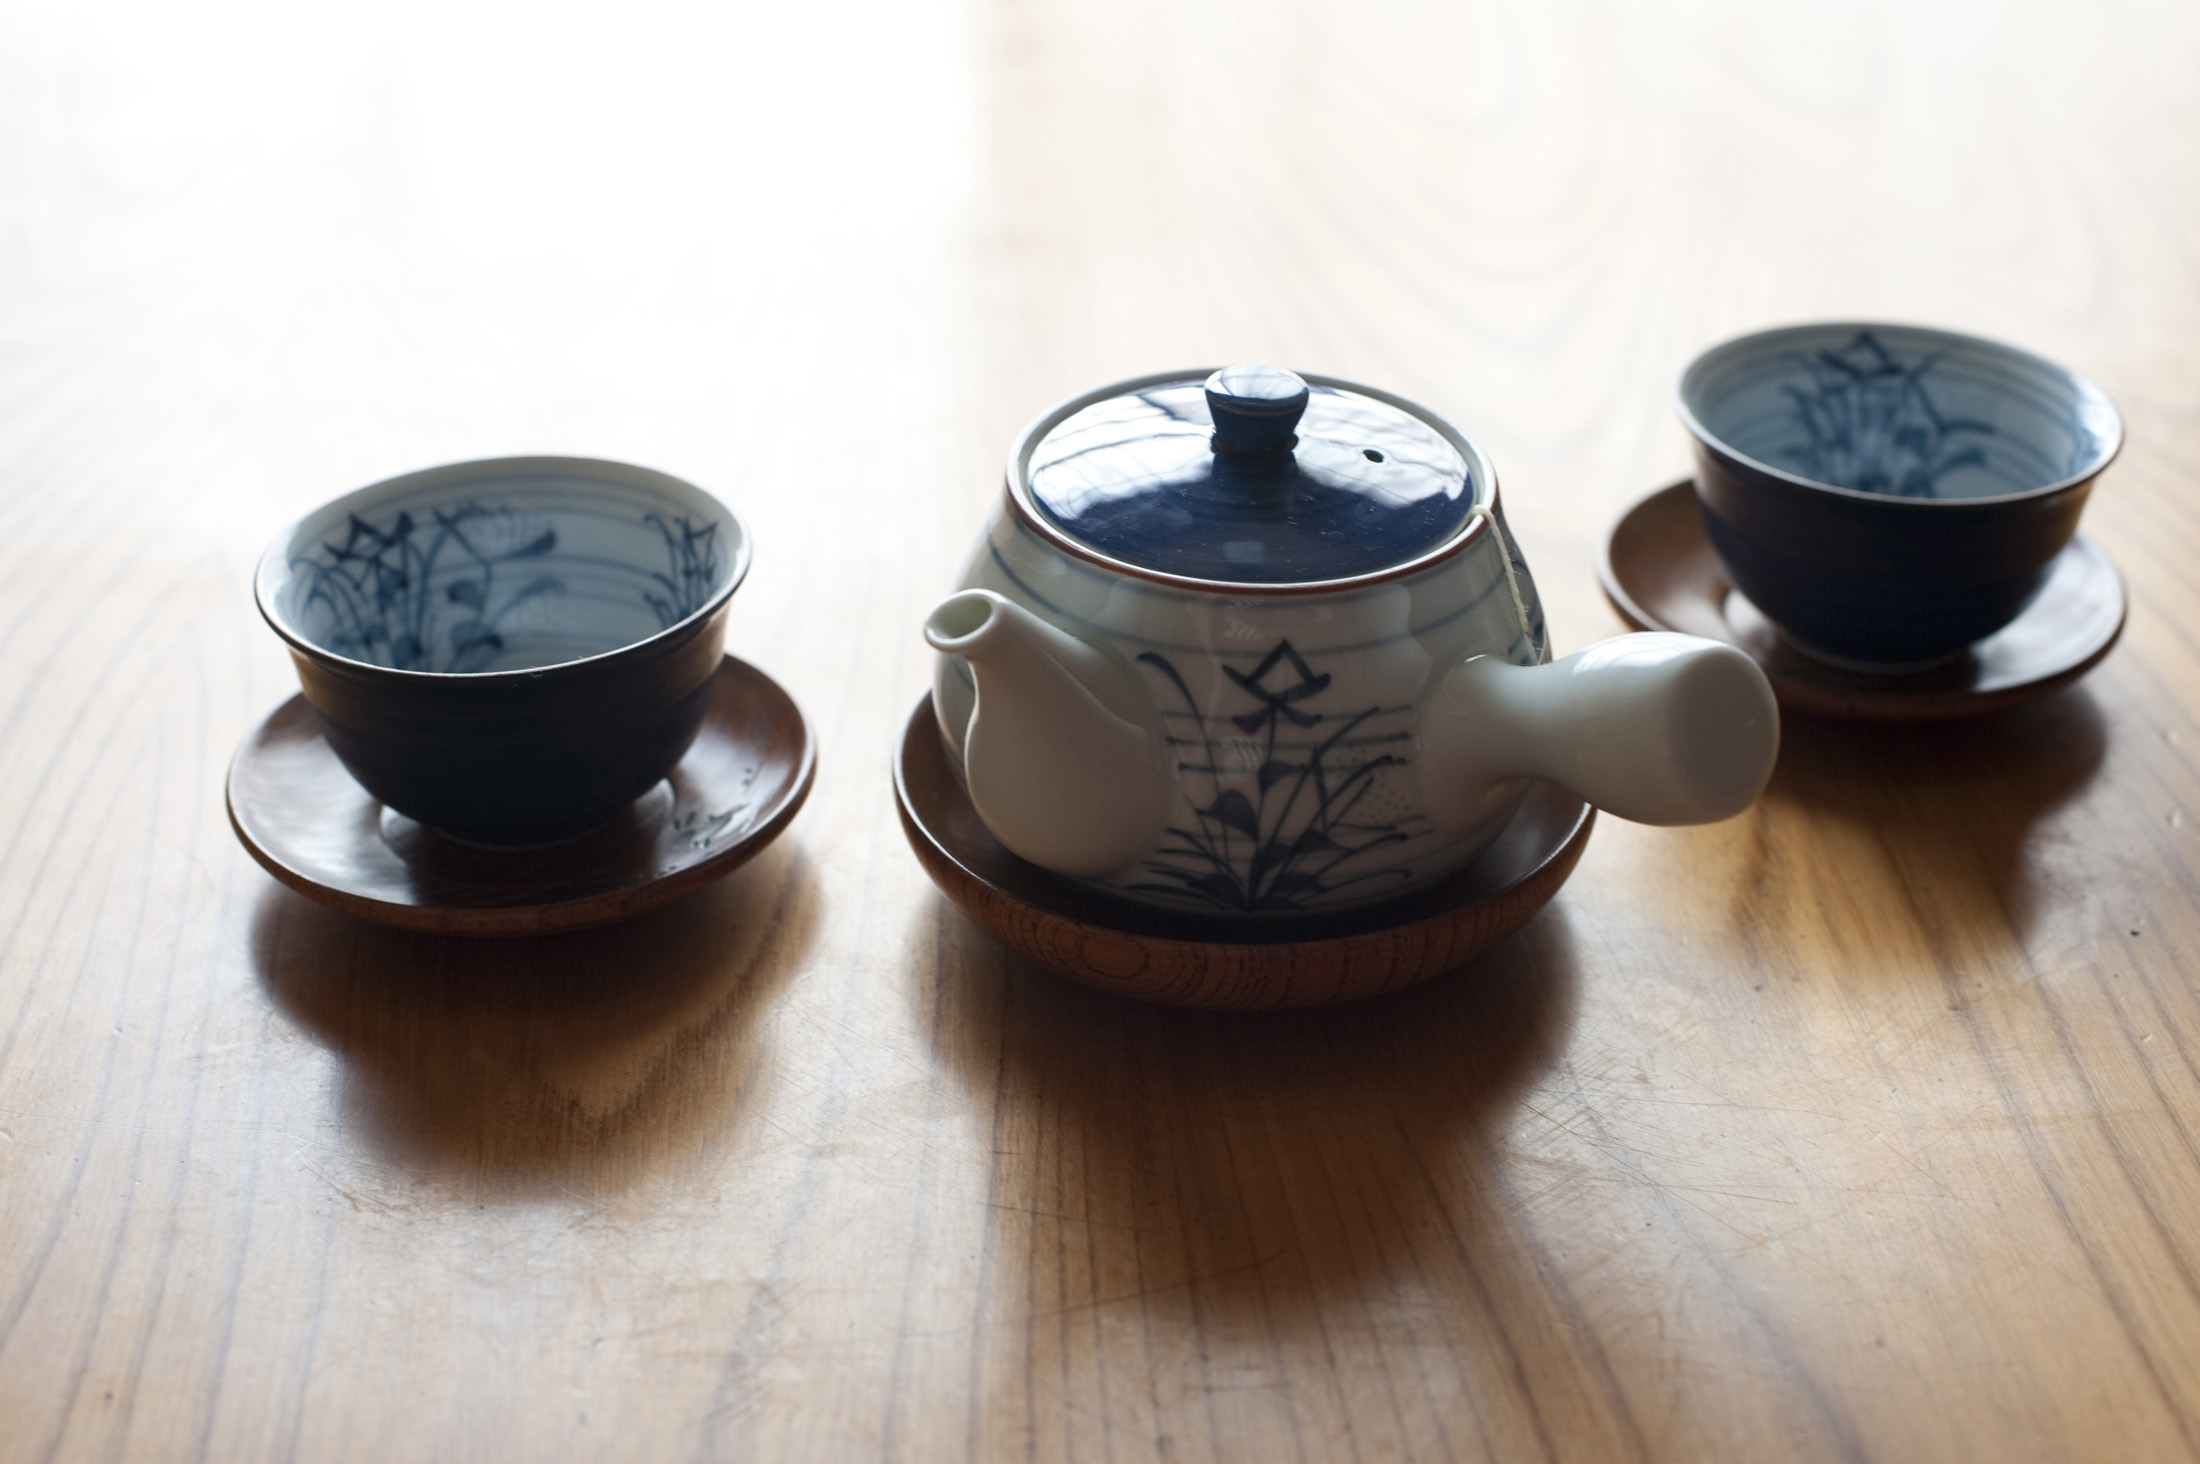 A Japanese teapot and two cups ready for a cup of green tea